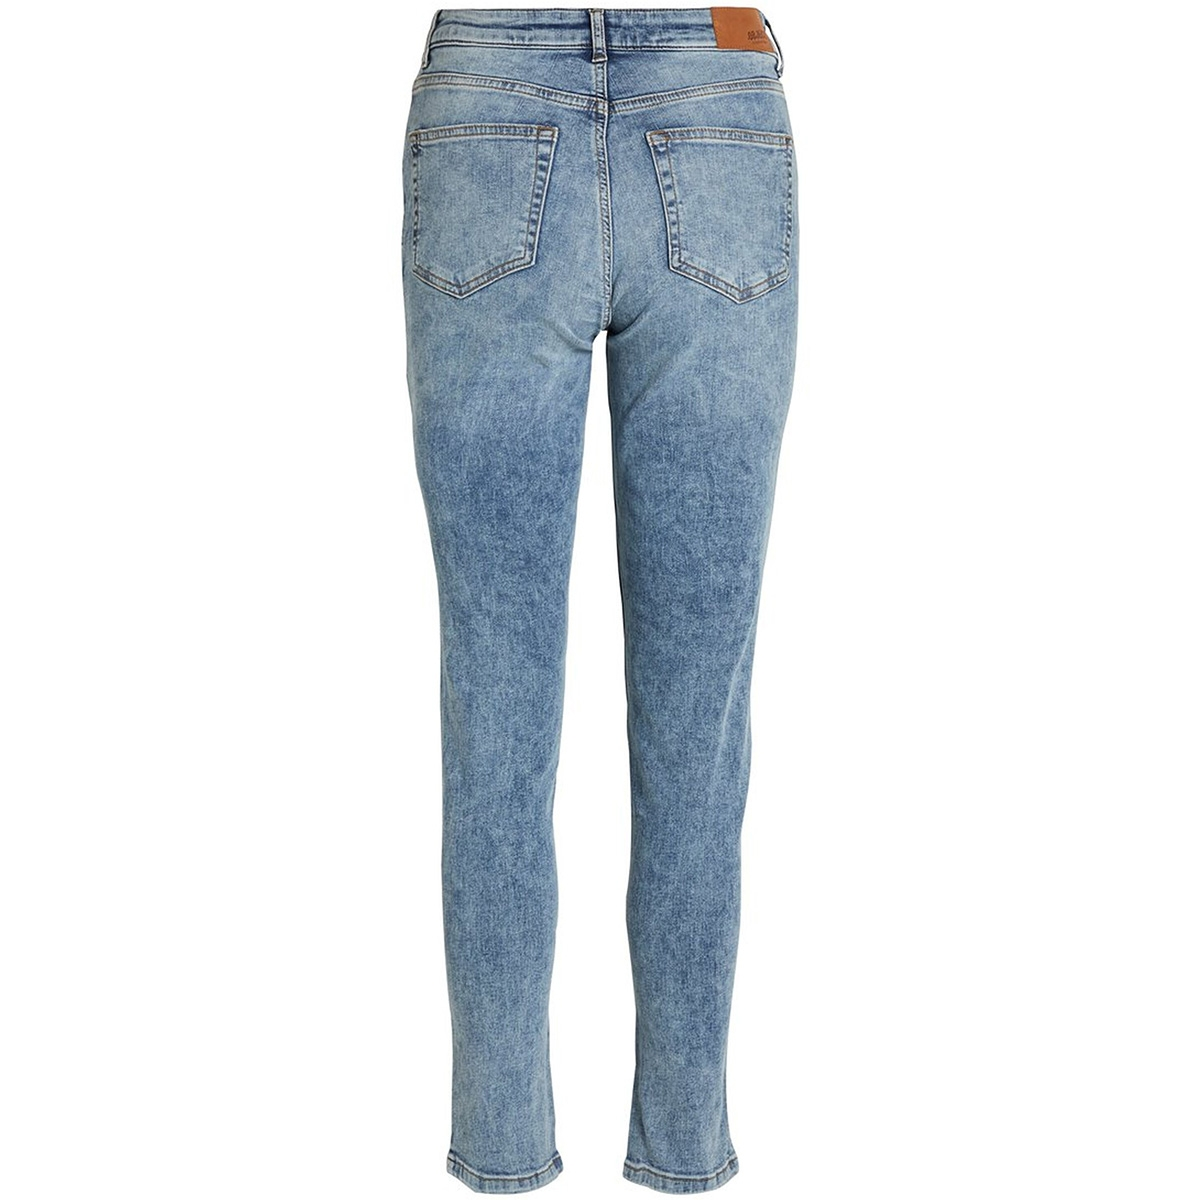 objsusannah ancle denim pant pb7 23031798 object jeans medium blue denim